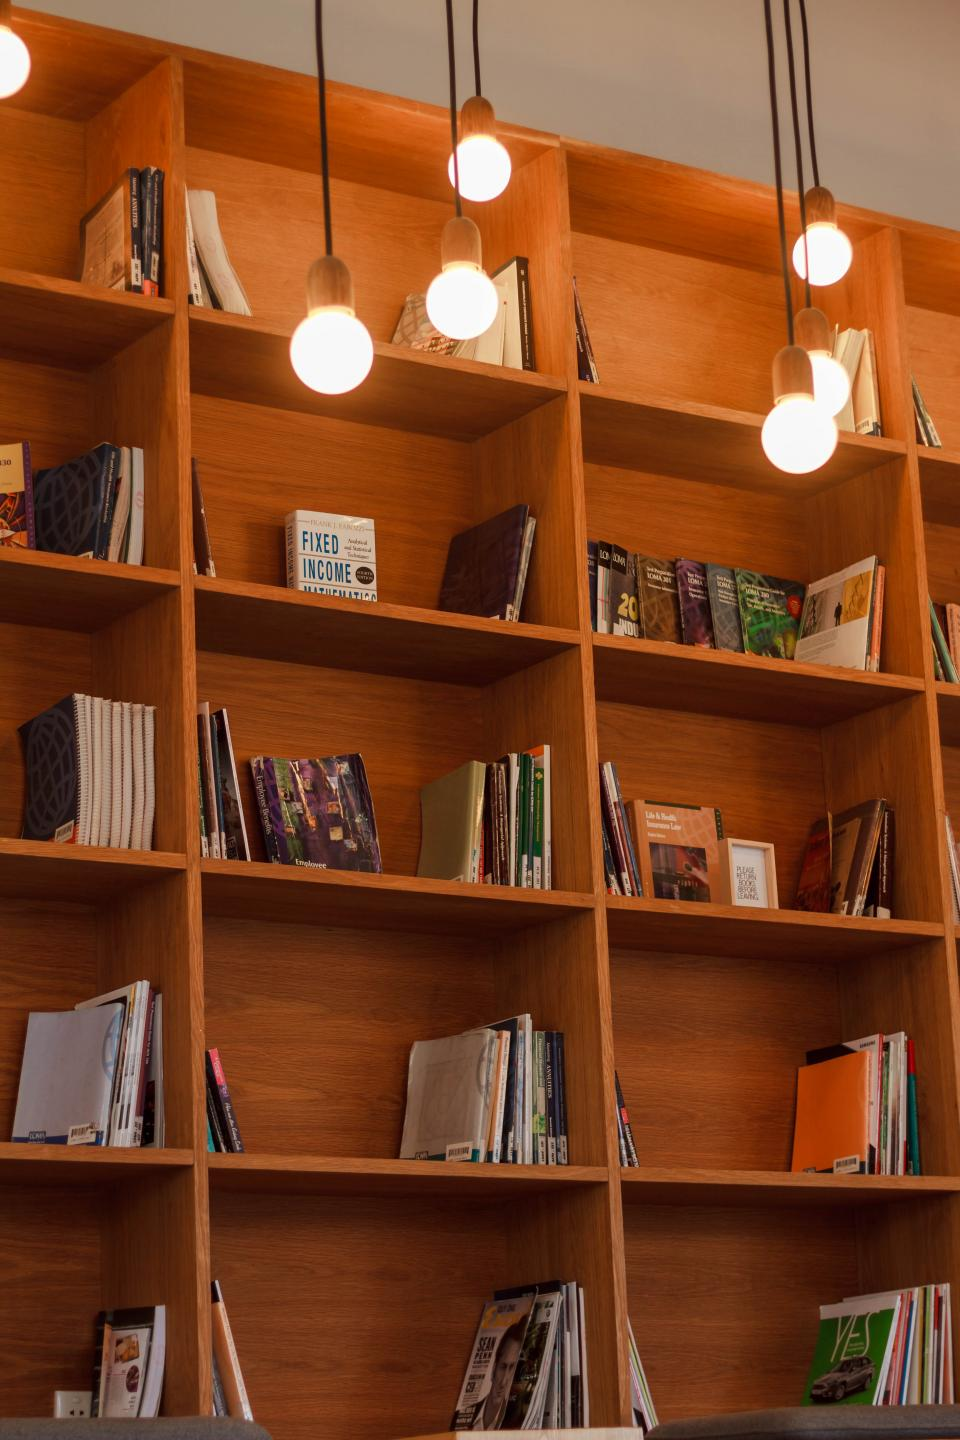 book shelf library school education knowledge light bulb